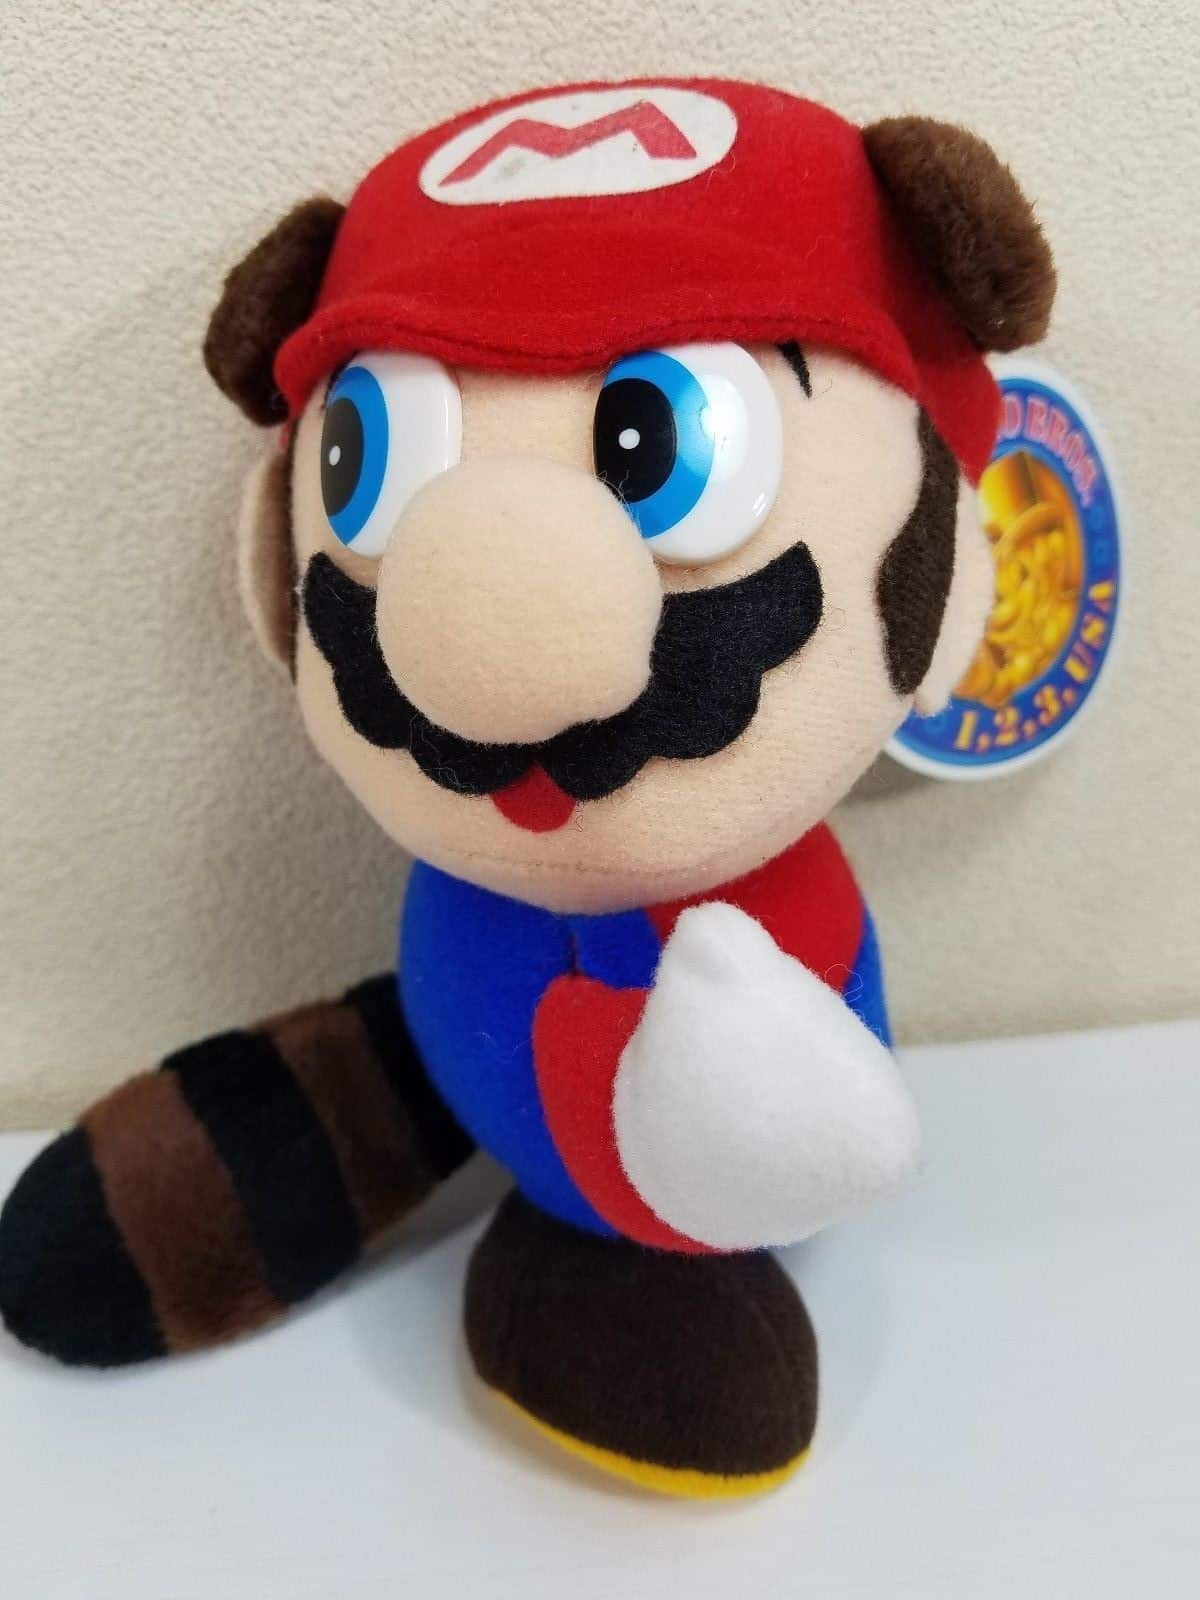 Banpresto Nintendo Super Mario Allstars Tanooki Mario Plush (1993) with Tag